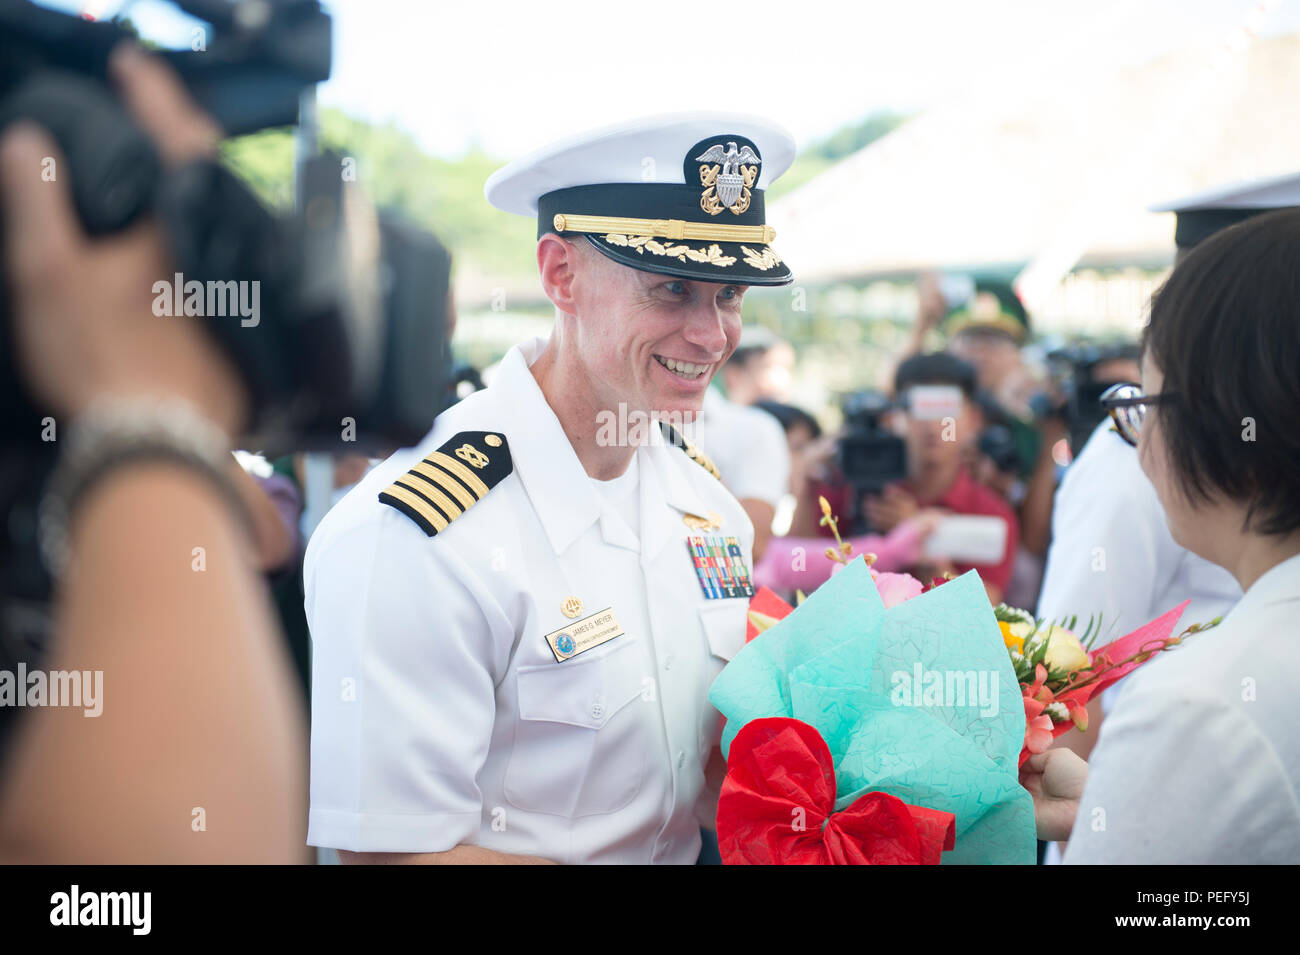 150817-N-MK341-039 DA NANG, Vietnam (Aug. 17, 2015) – Commodore, Task Force Forager Capt. James Meyer greets a representative from the De Nang People's Committee, Aug. 17. Vietnam is the fifth stop for the Military Sealift Command joint high speed vessel USNS Millinocket (JHSV 3) and embarked Task Force Forager. Millinocket and embarked Task Force Forager are serving as the secondary platform for Pacific Partnership, led by an expeditionary command element from the Navy's 30th Naval Construction Regiment (30 NCR) from Port Hueneme, Calif. Now in its 10th iteration, Pacific Partnership is the l - Stock Image